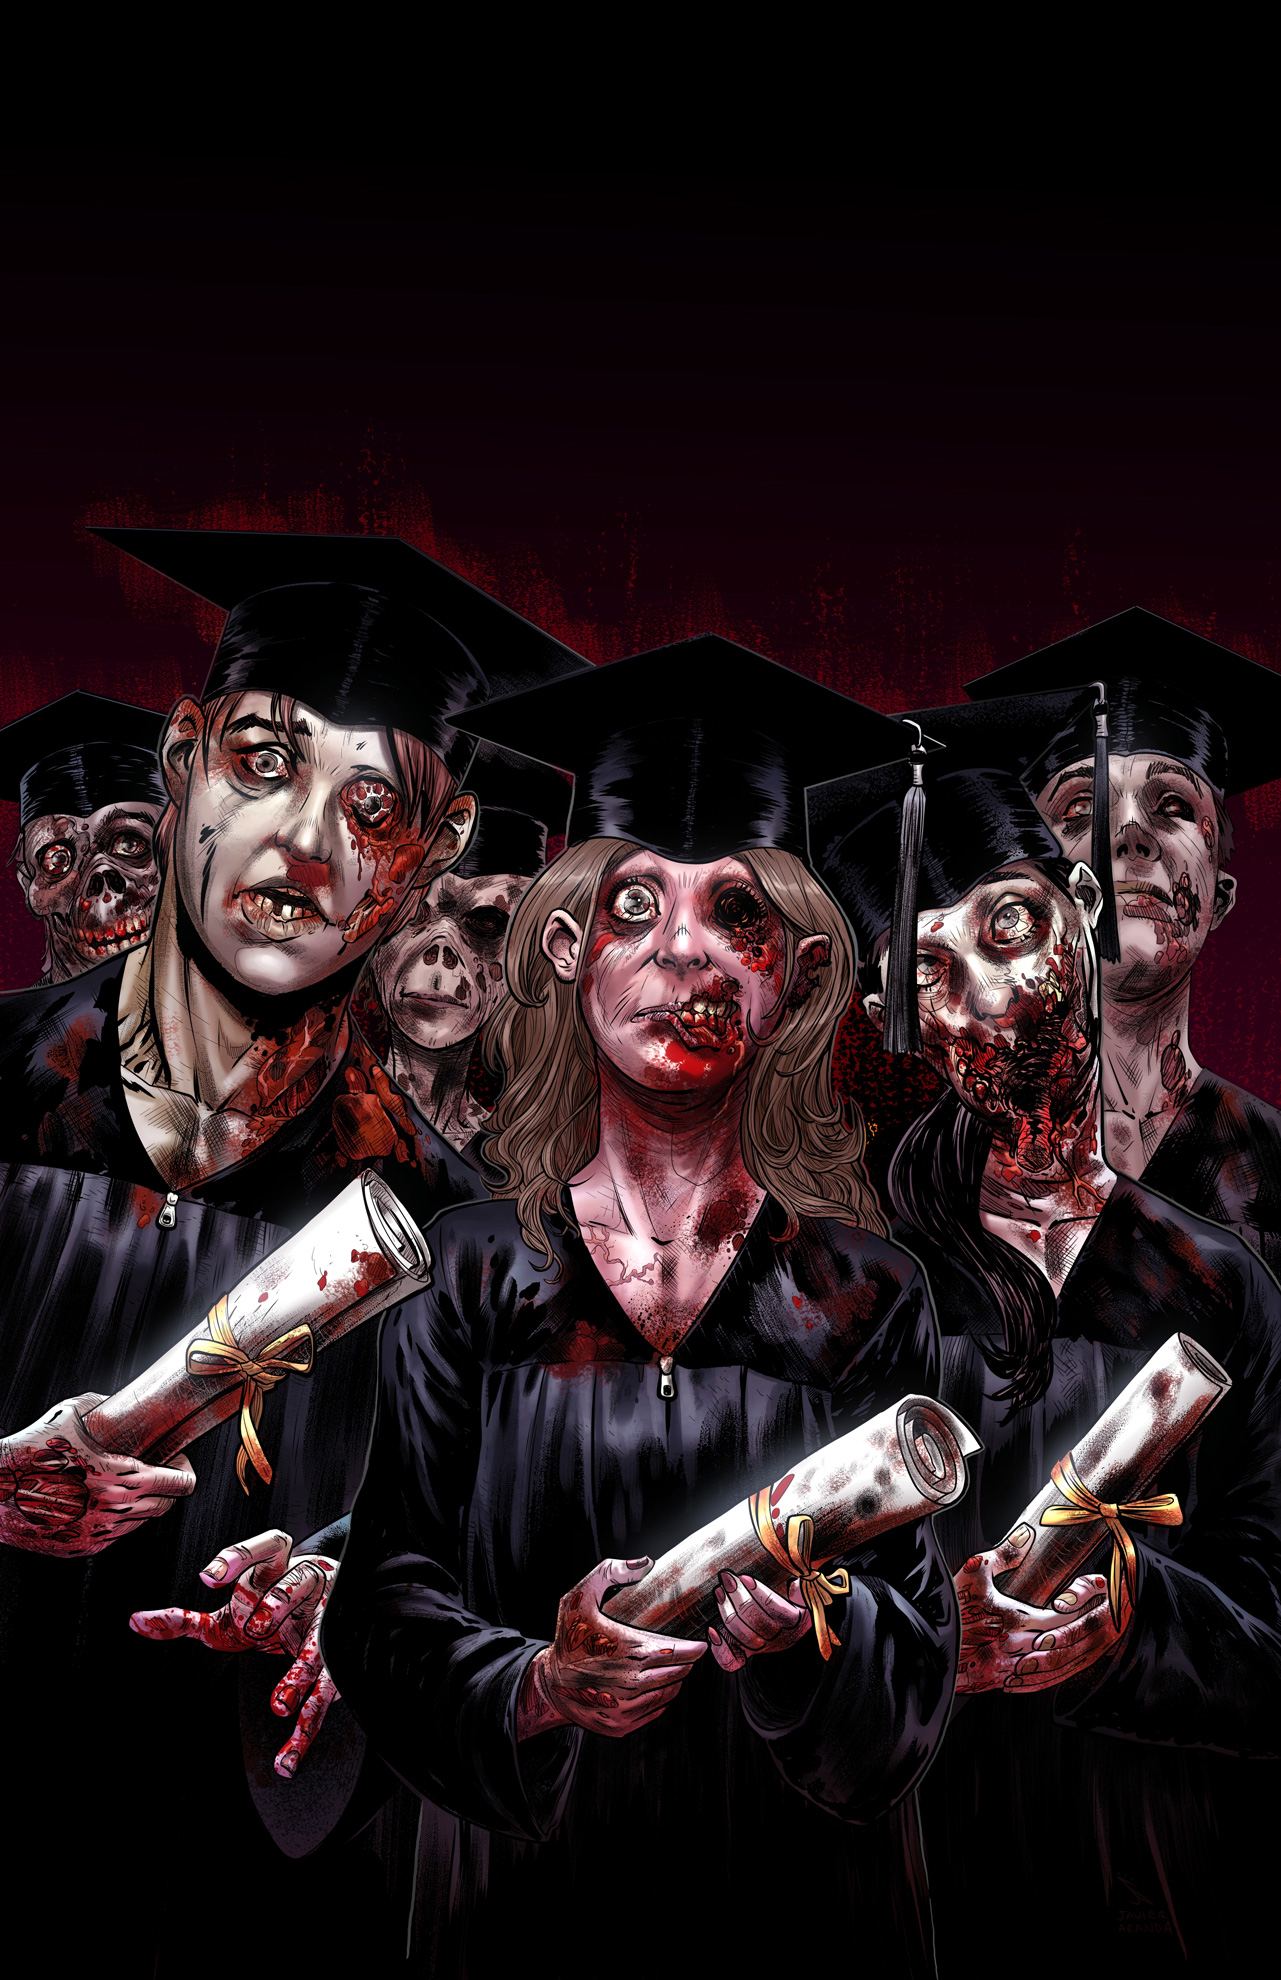 COLLEGE OF THE DEAD GRADUATION DAY COMIC BOOK